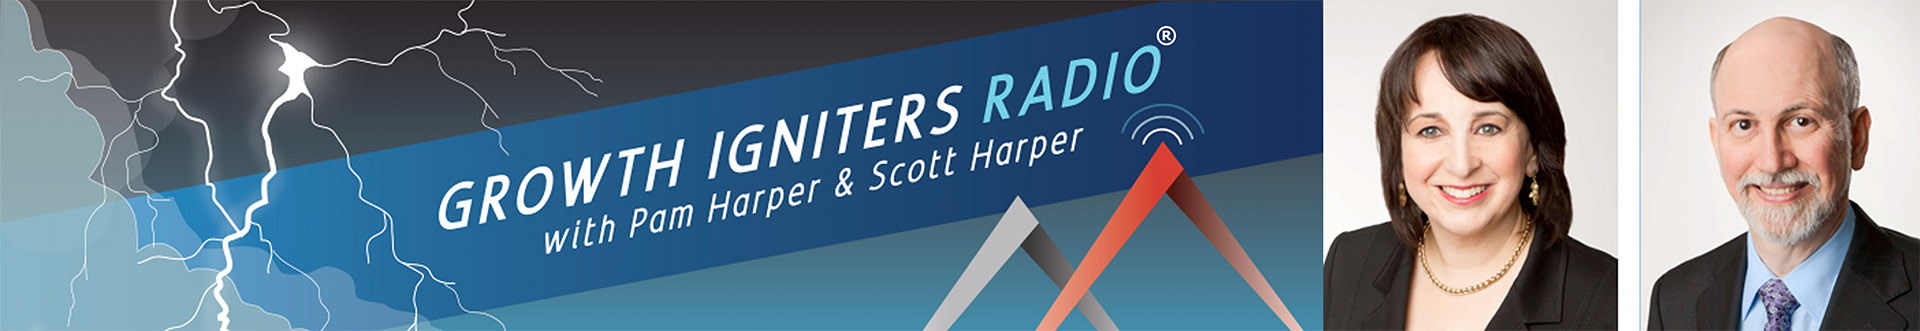 Growth Ignitors Radio